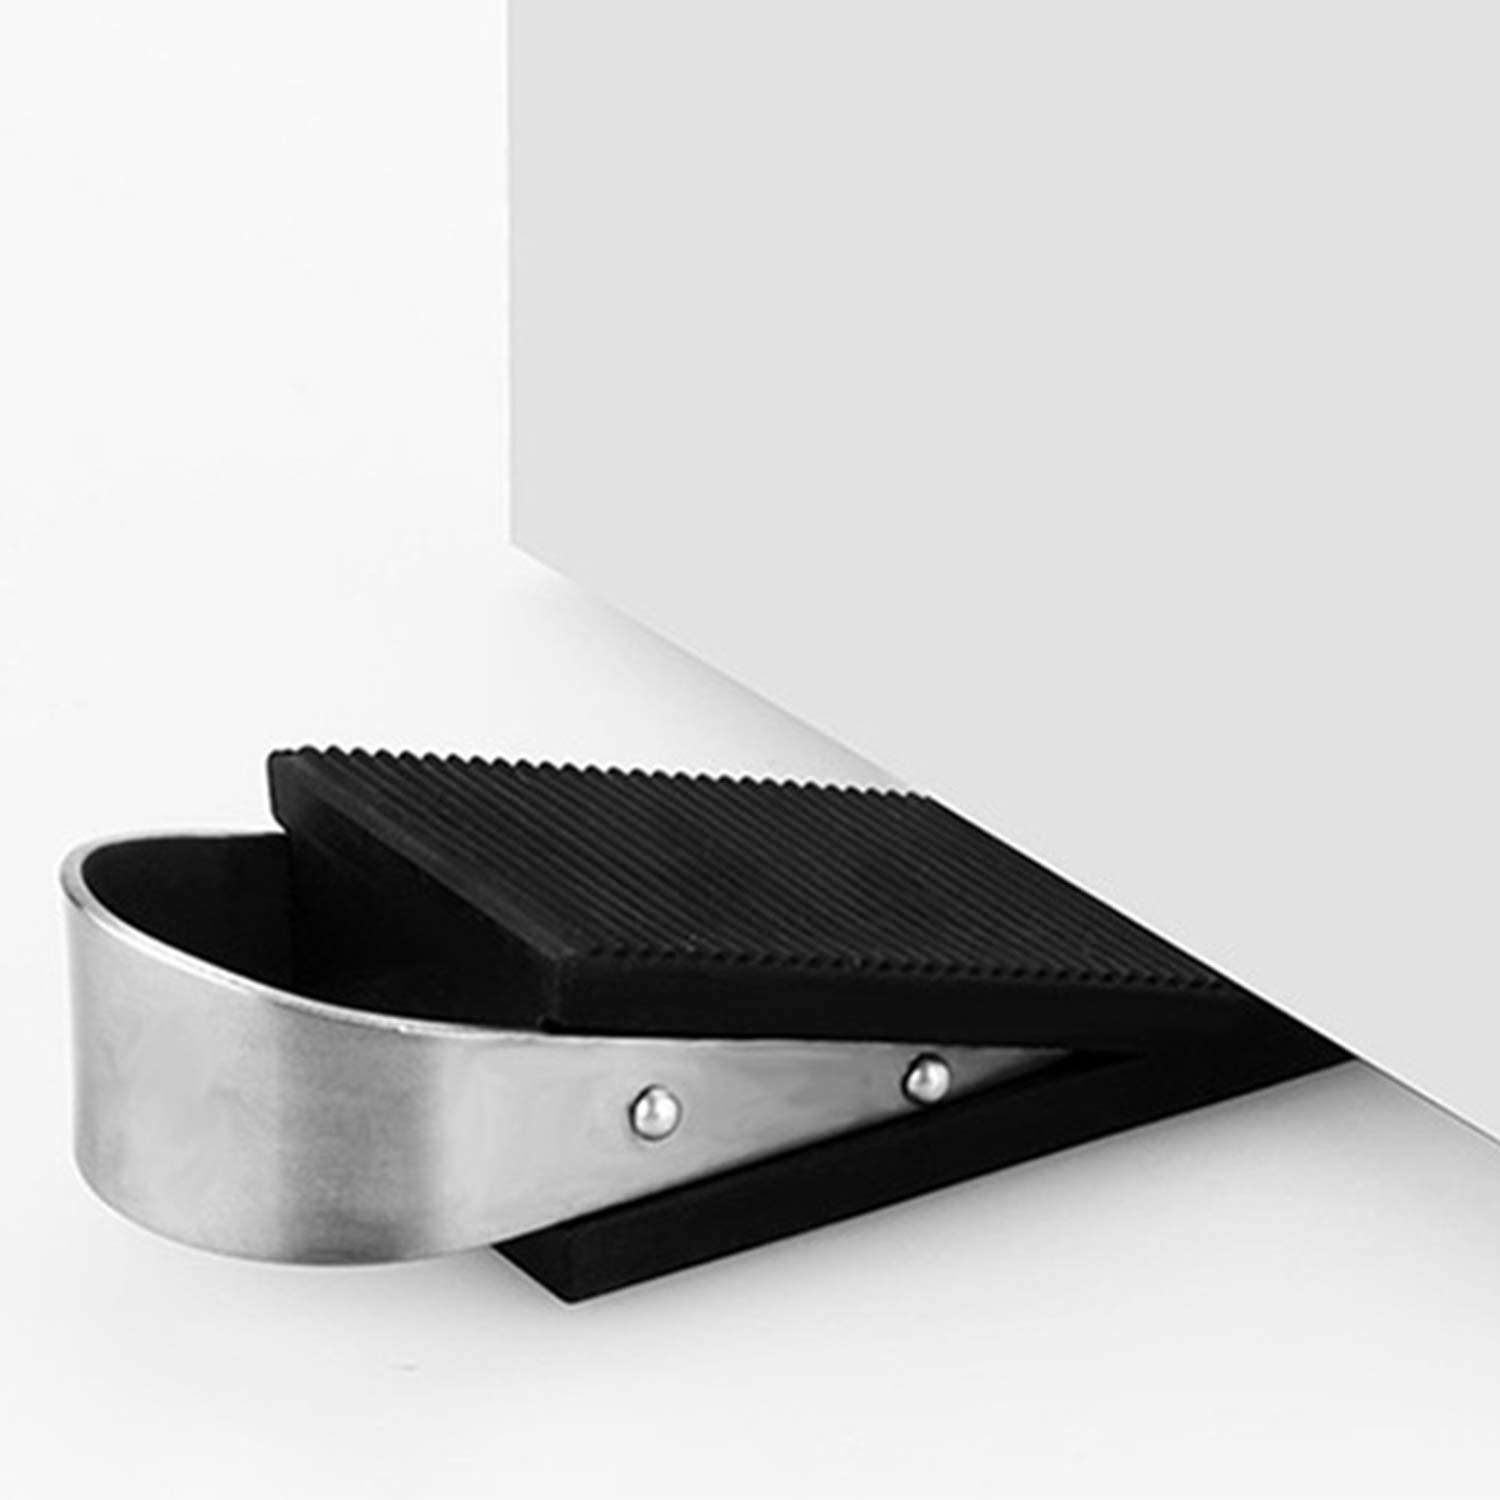 Heavy Duty Wedge Rubber Stopper That Wont Scratch Floor or Door 2 Pack Premium Door Stopper Works On All Surfaces,Anti-Slip Non-Scratching for Home Office School and Garden